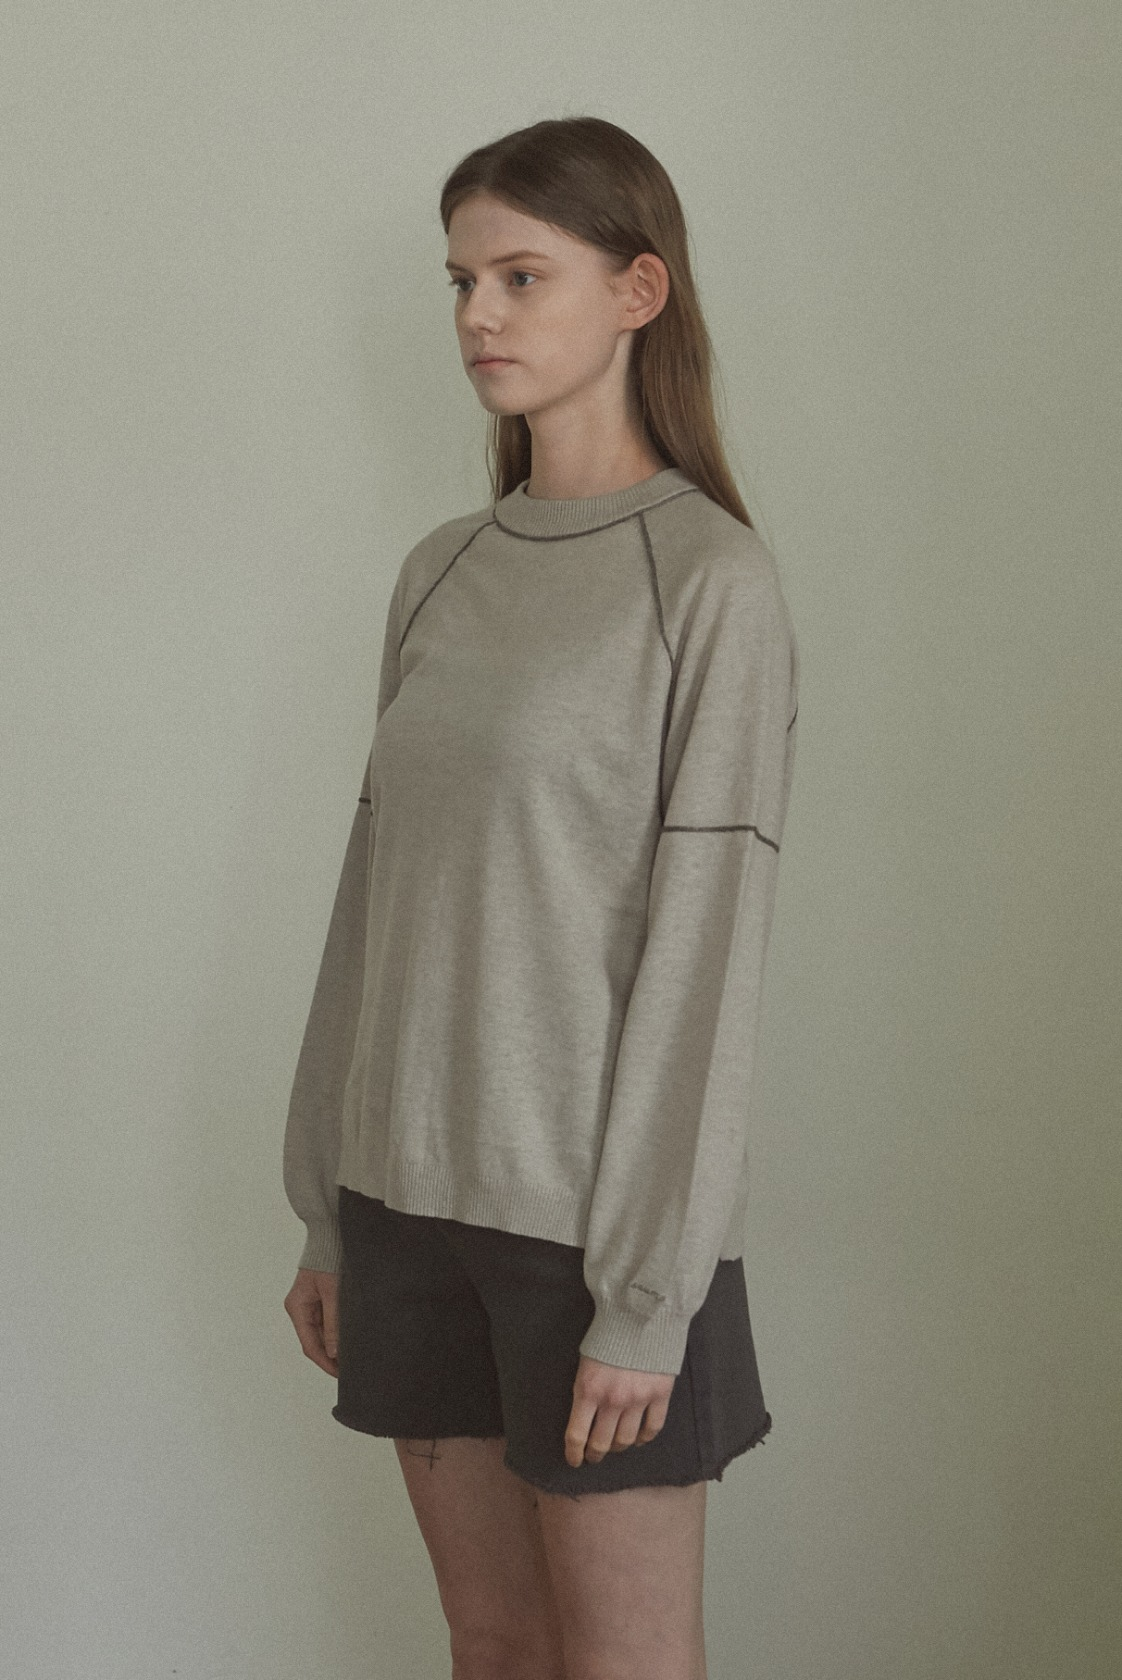 Collaboration Band linen top_Sand Beige